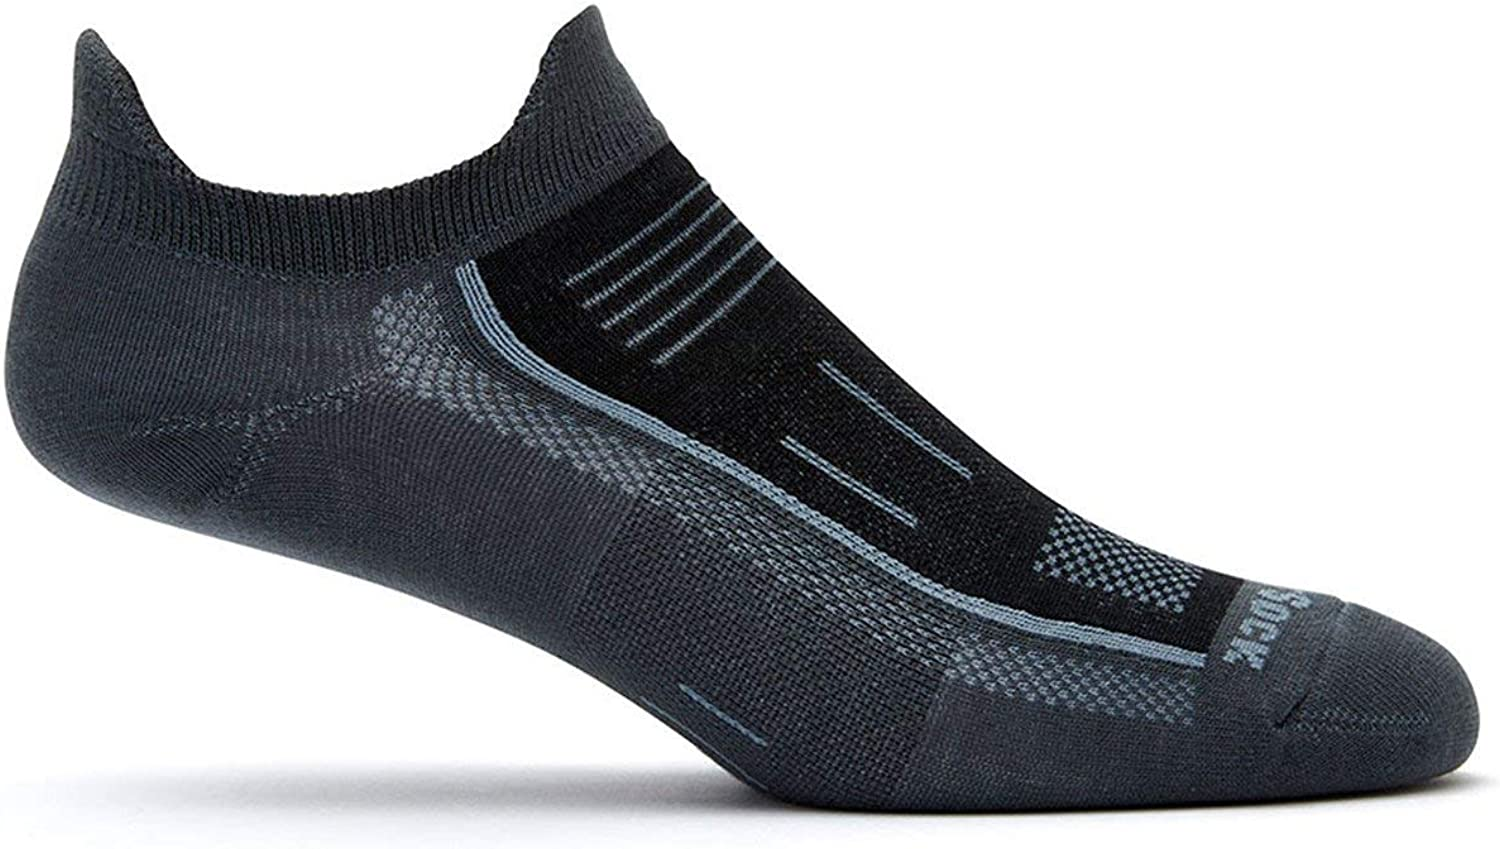 Wrightsock Endurance Double Tab Max 43% OFF Ash Black Shoe Men's 5-8 Wo MD Max 56% OFF